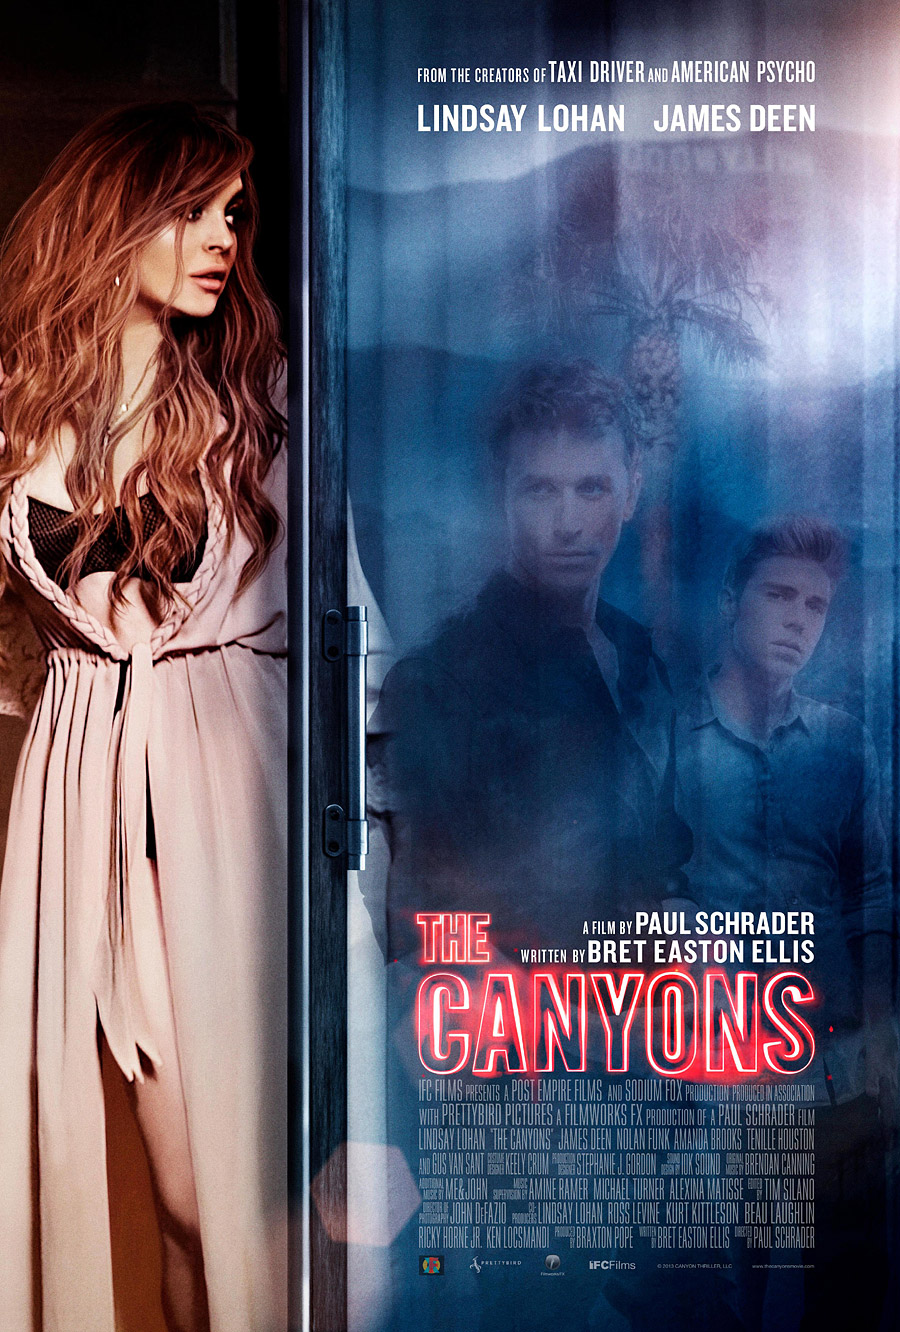 The Canyons_IFC poster.jpeg